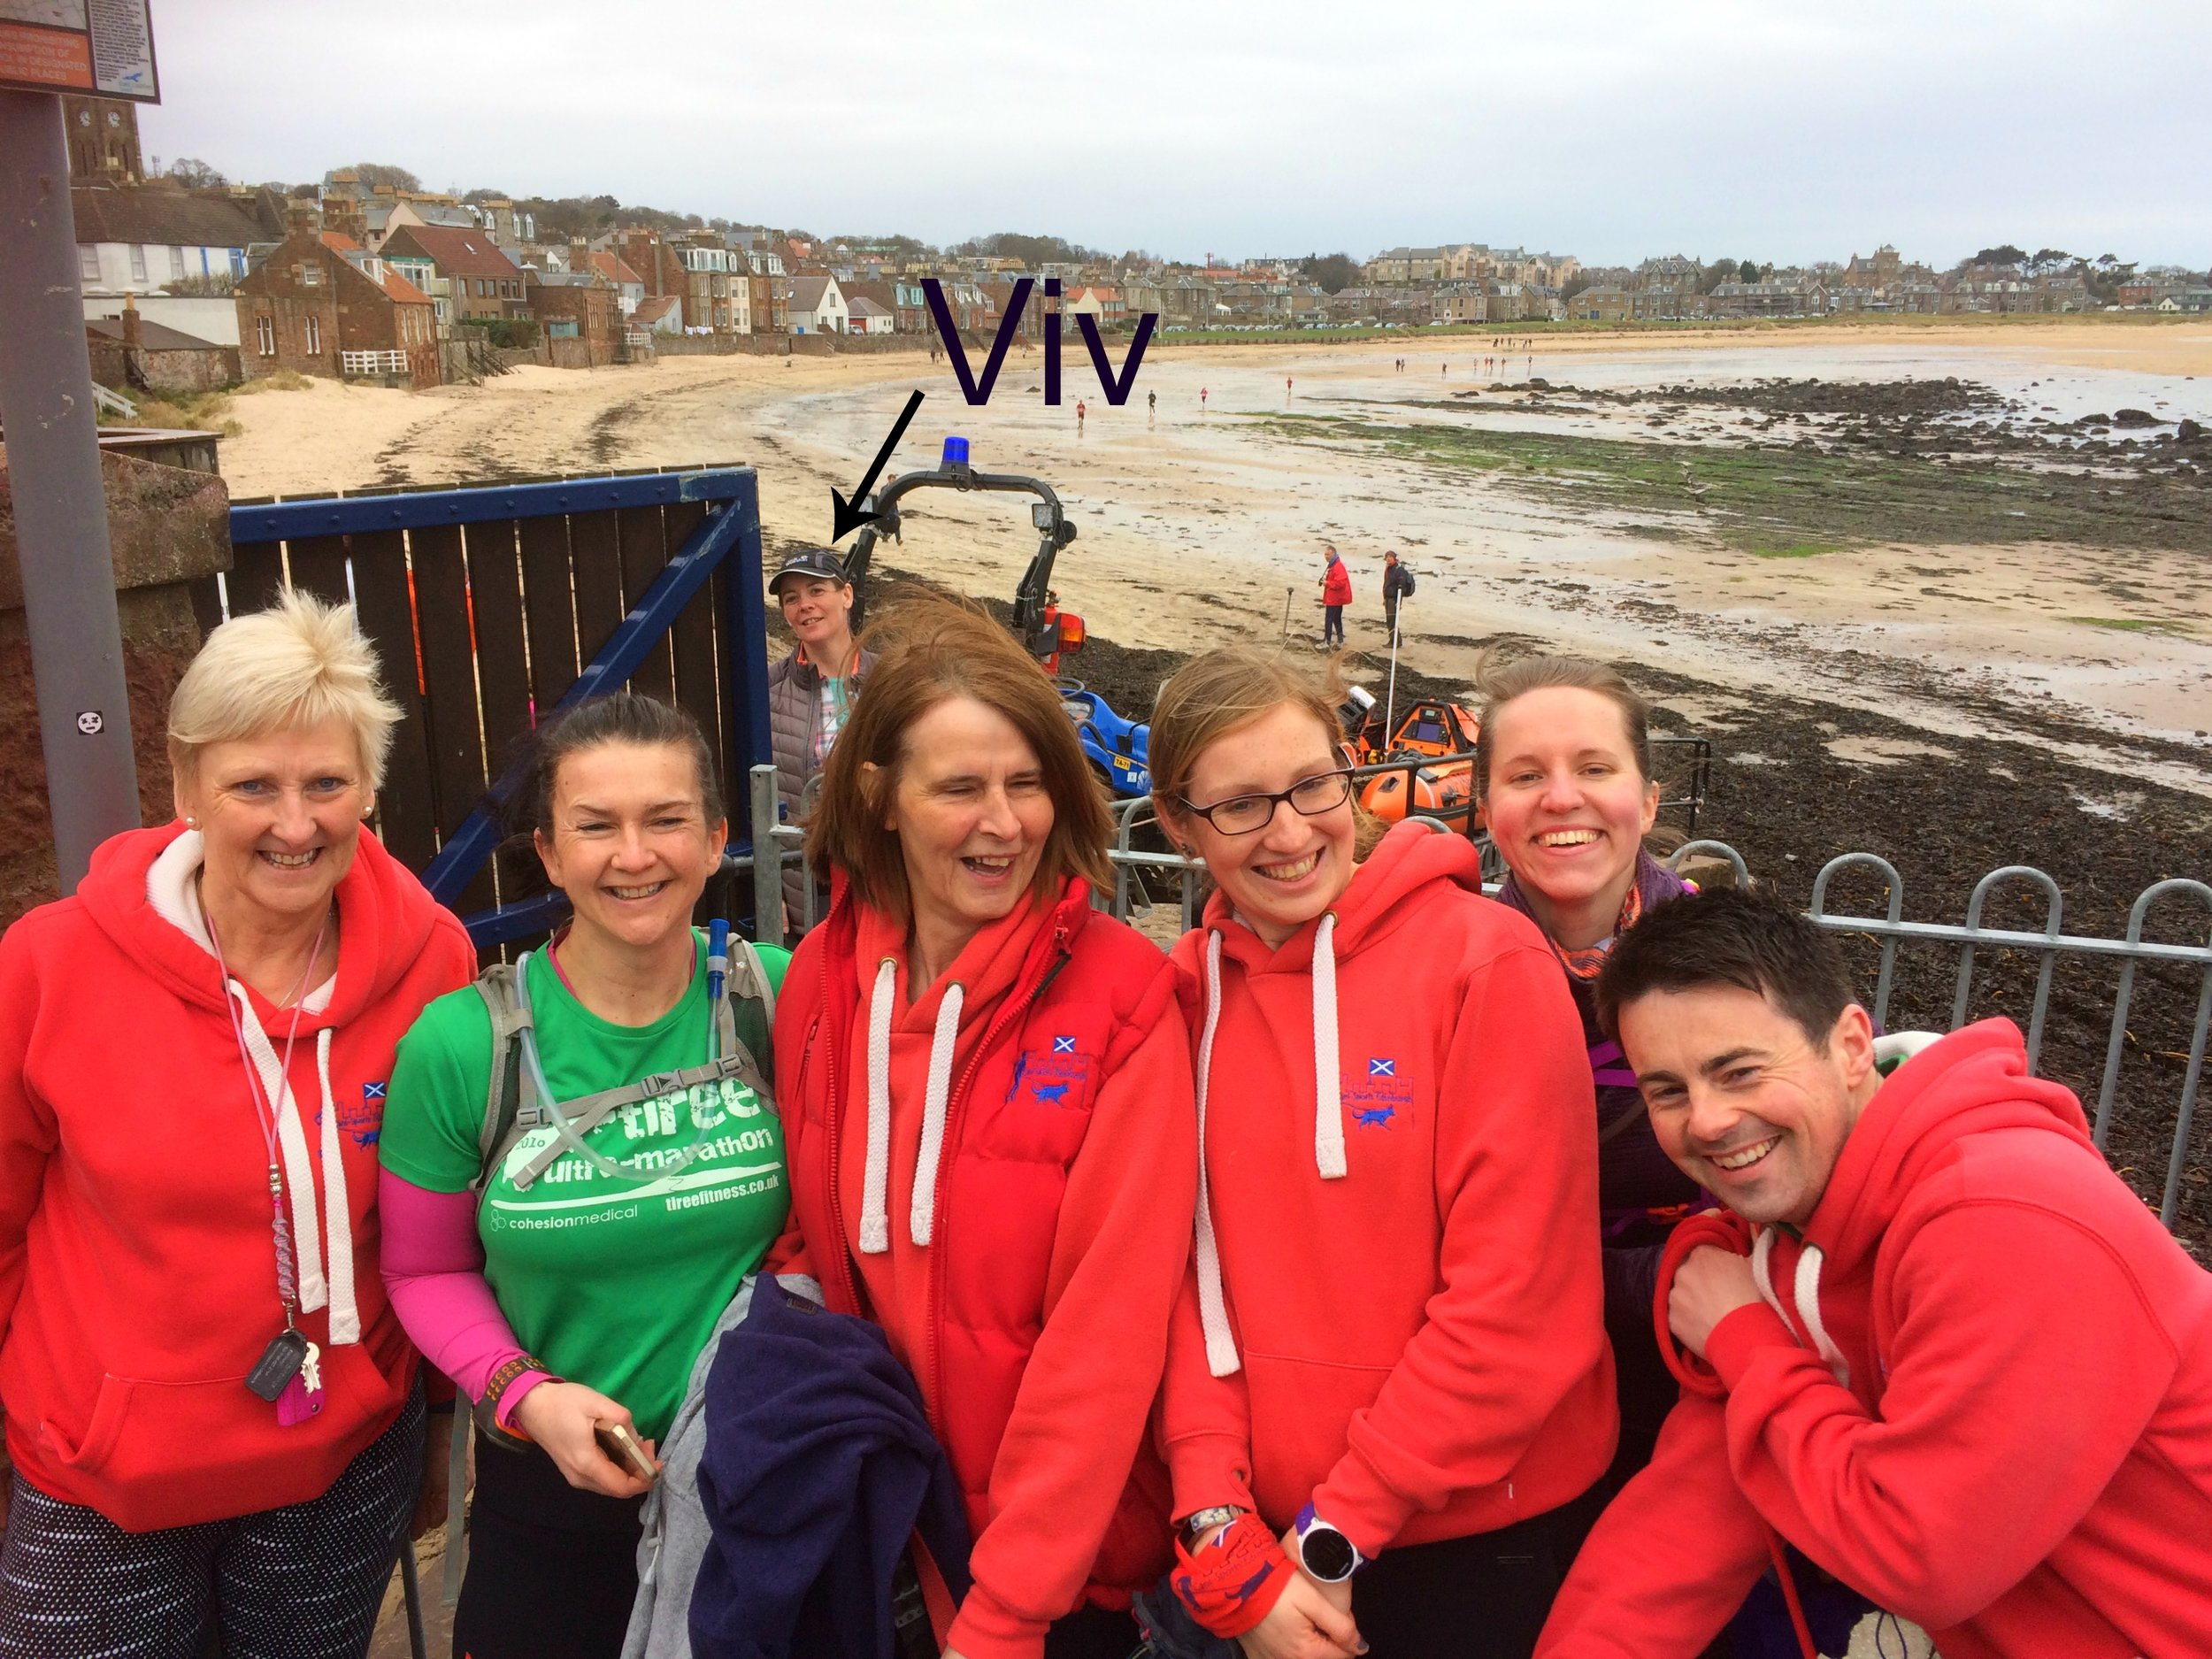 The CSE crew; Avril,Jill, Susan, Jenny, Jenny and Lee and not forgetting Viv at the back